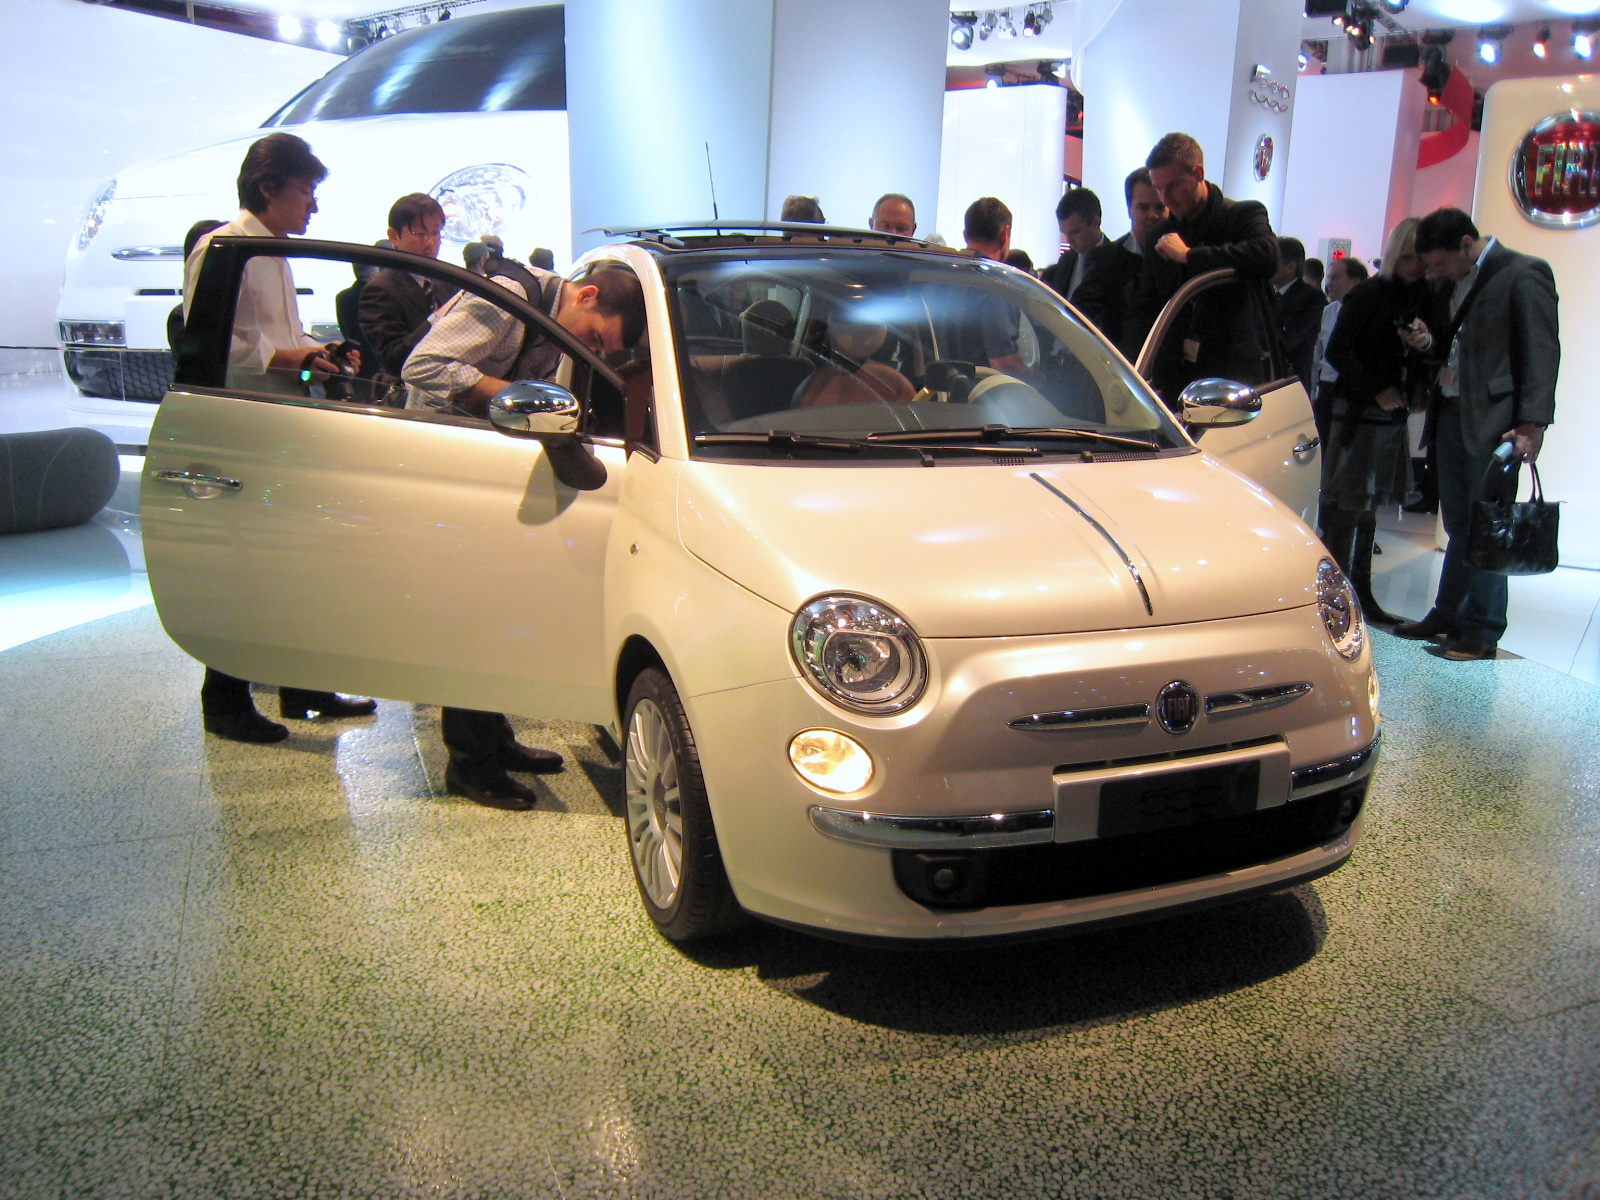 Ah, here's the real, actual size Fiat 500.